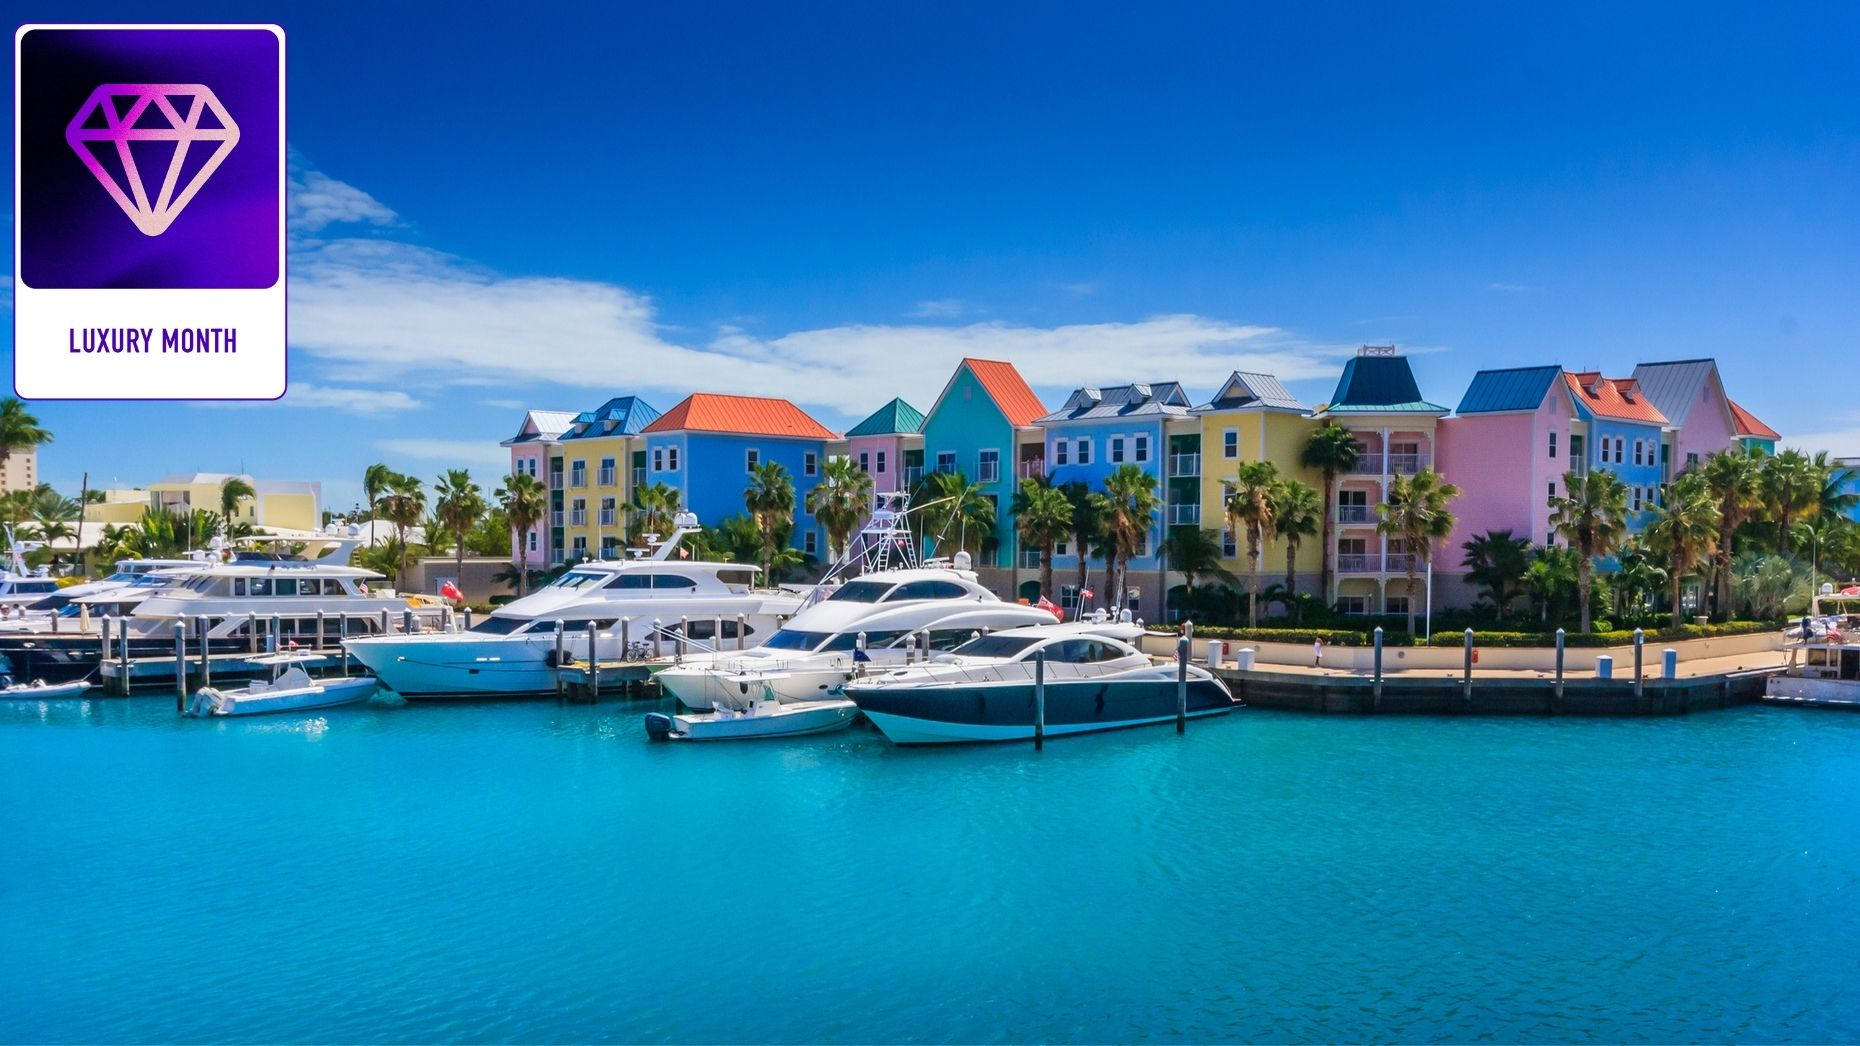 Even amid travel restrictions, Bahamas real estate lures many